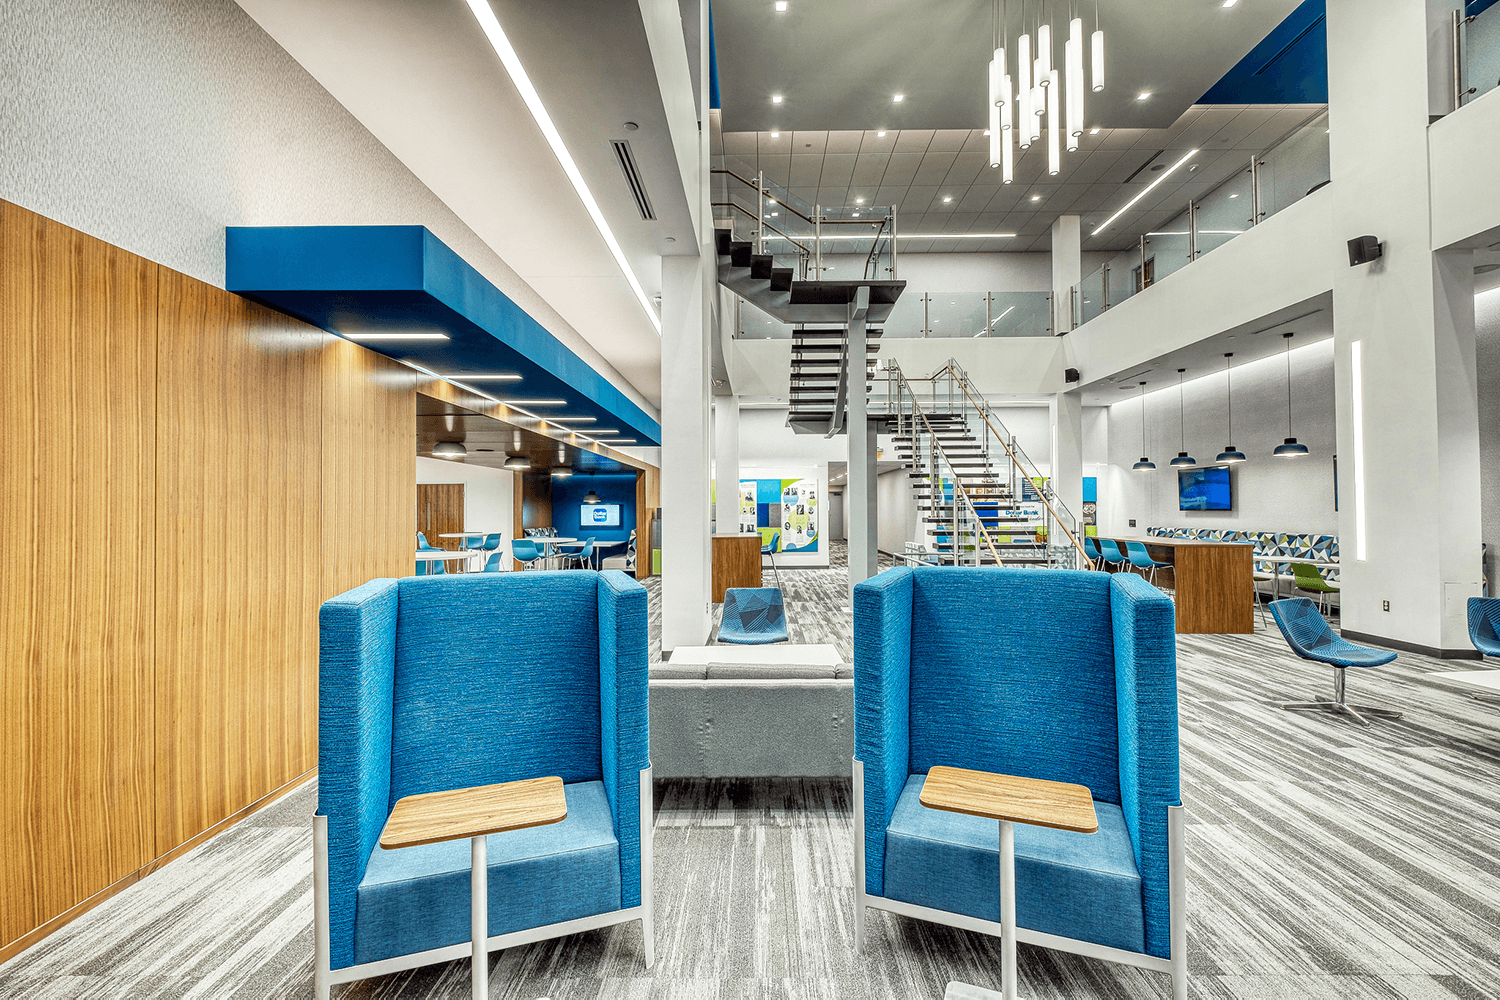 two blue chairs with small mobile desks sitting in front of them